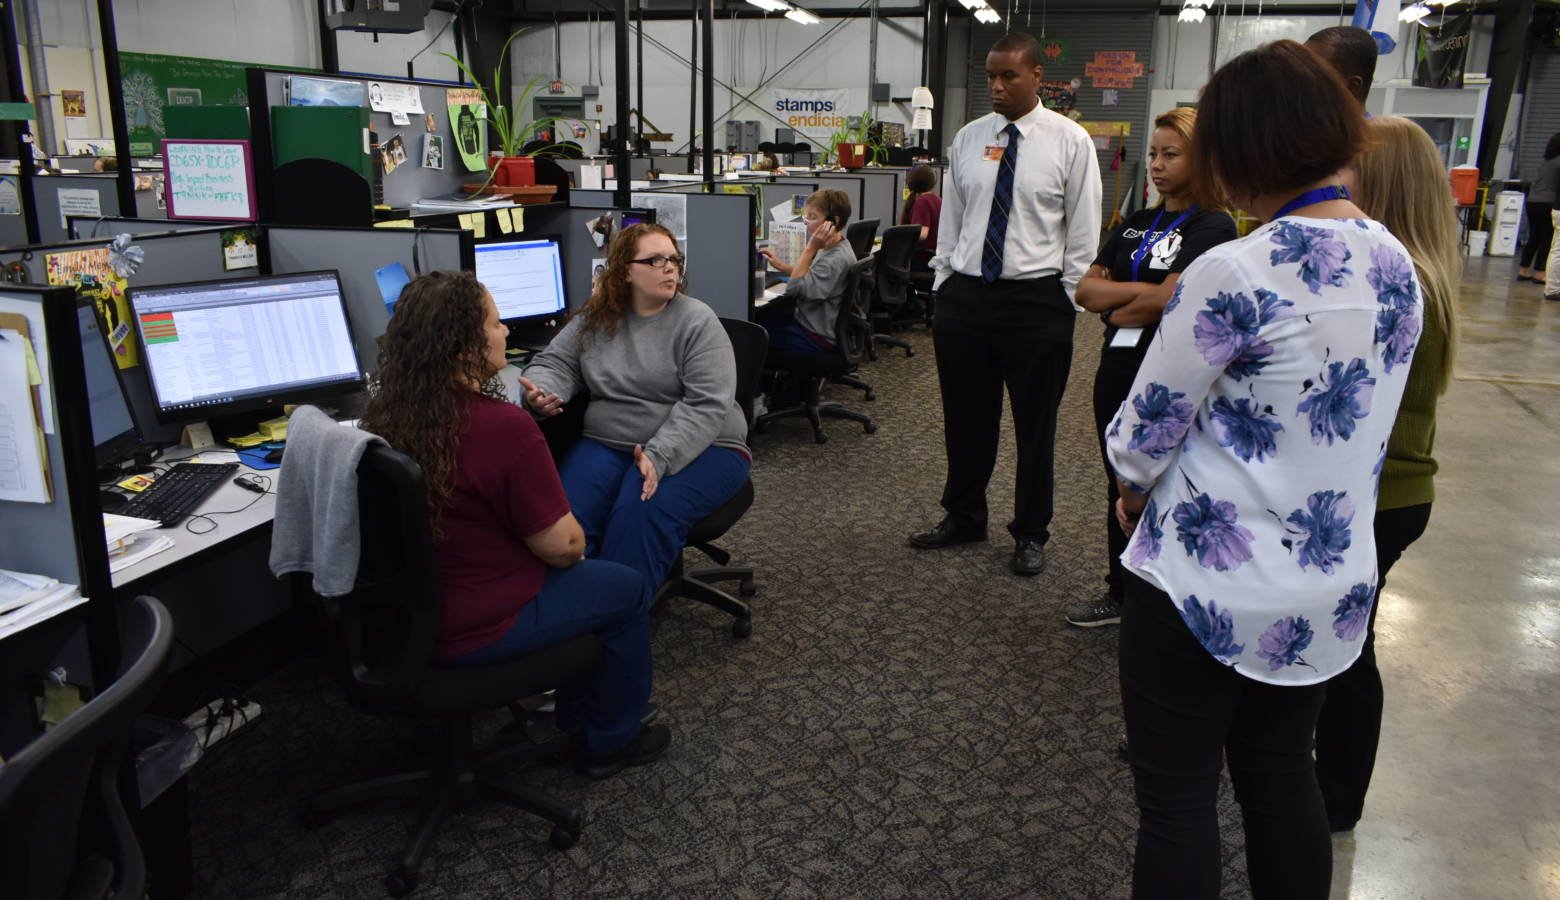 Employers speak with inmates at the Televerde call center located within Rockville Correctional Facility. (Justin Hicks/IPB News)